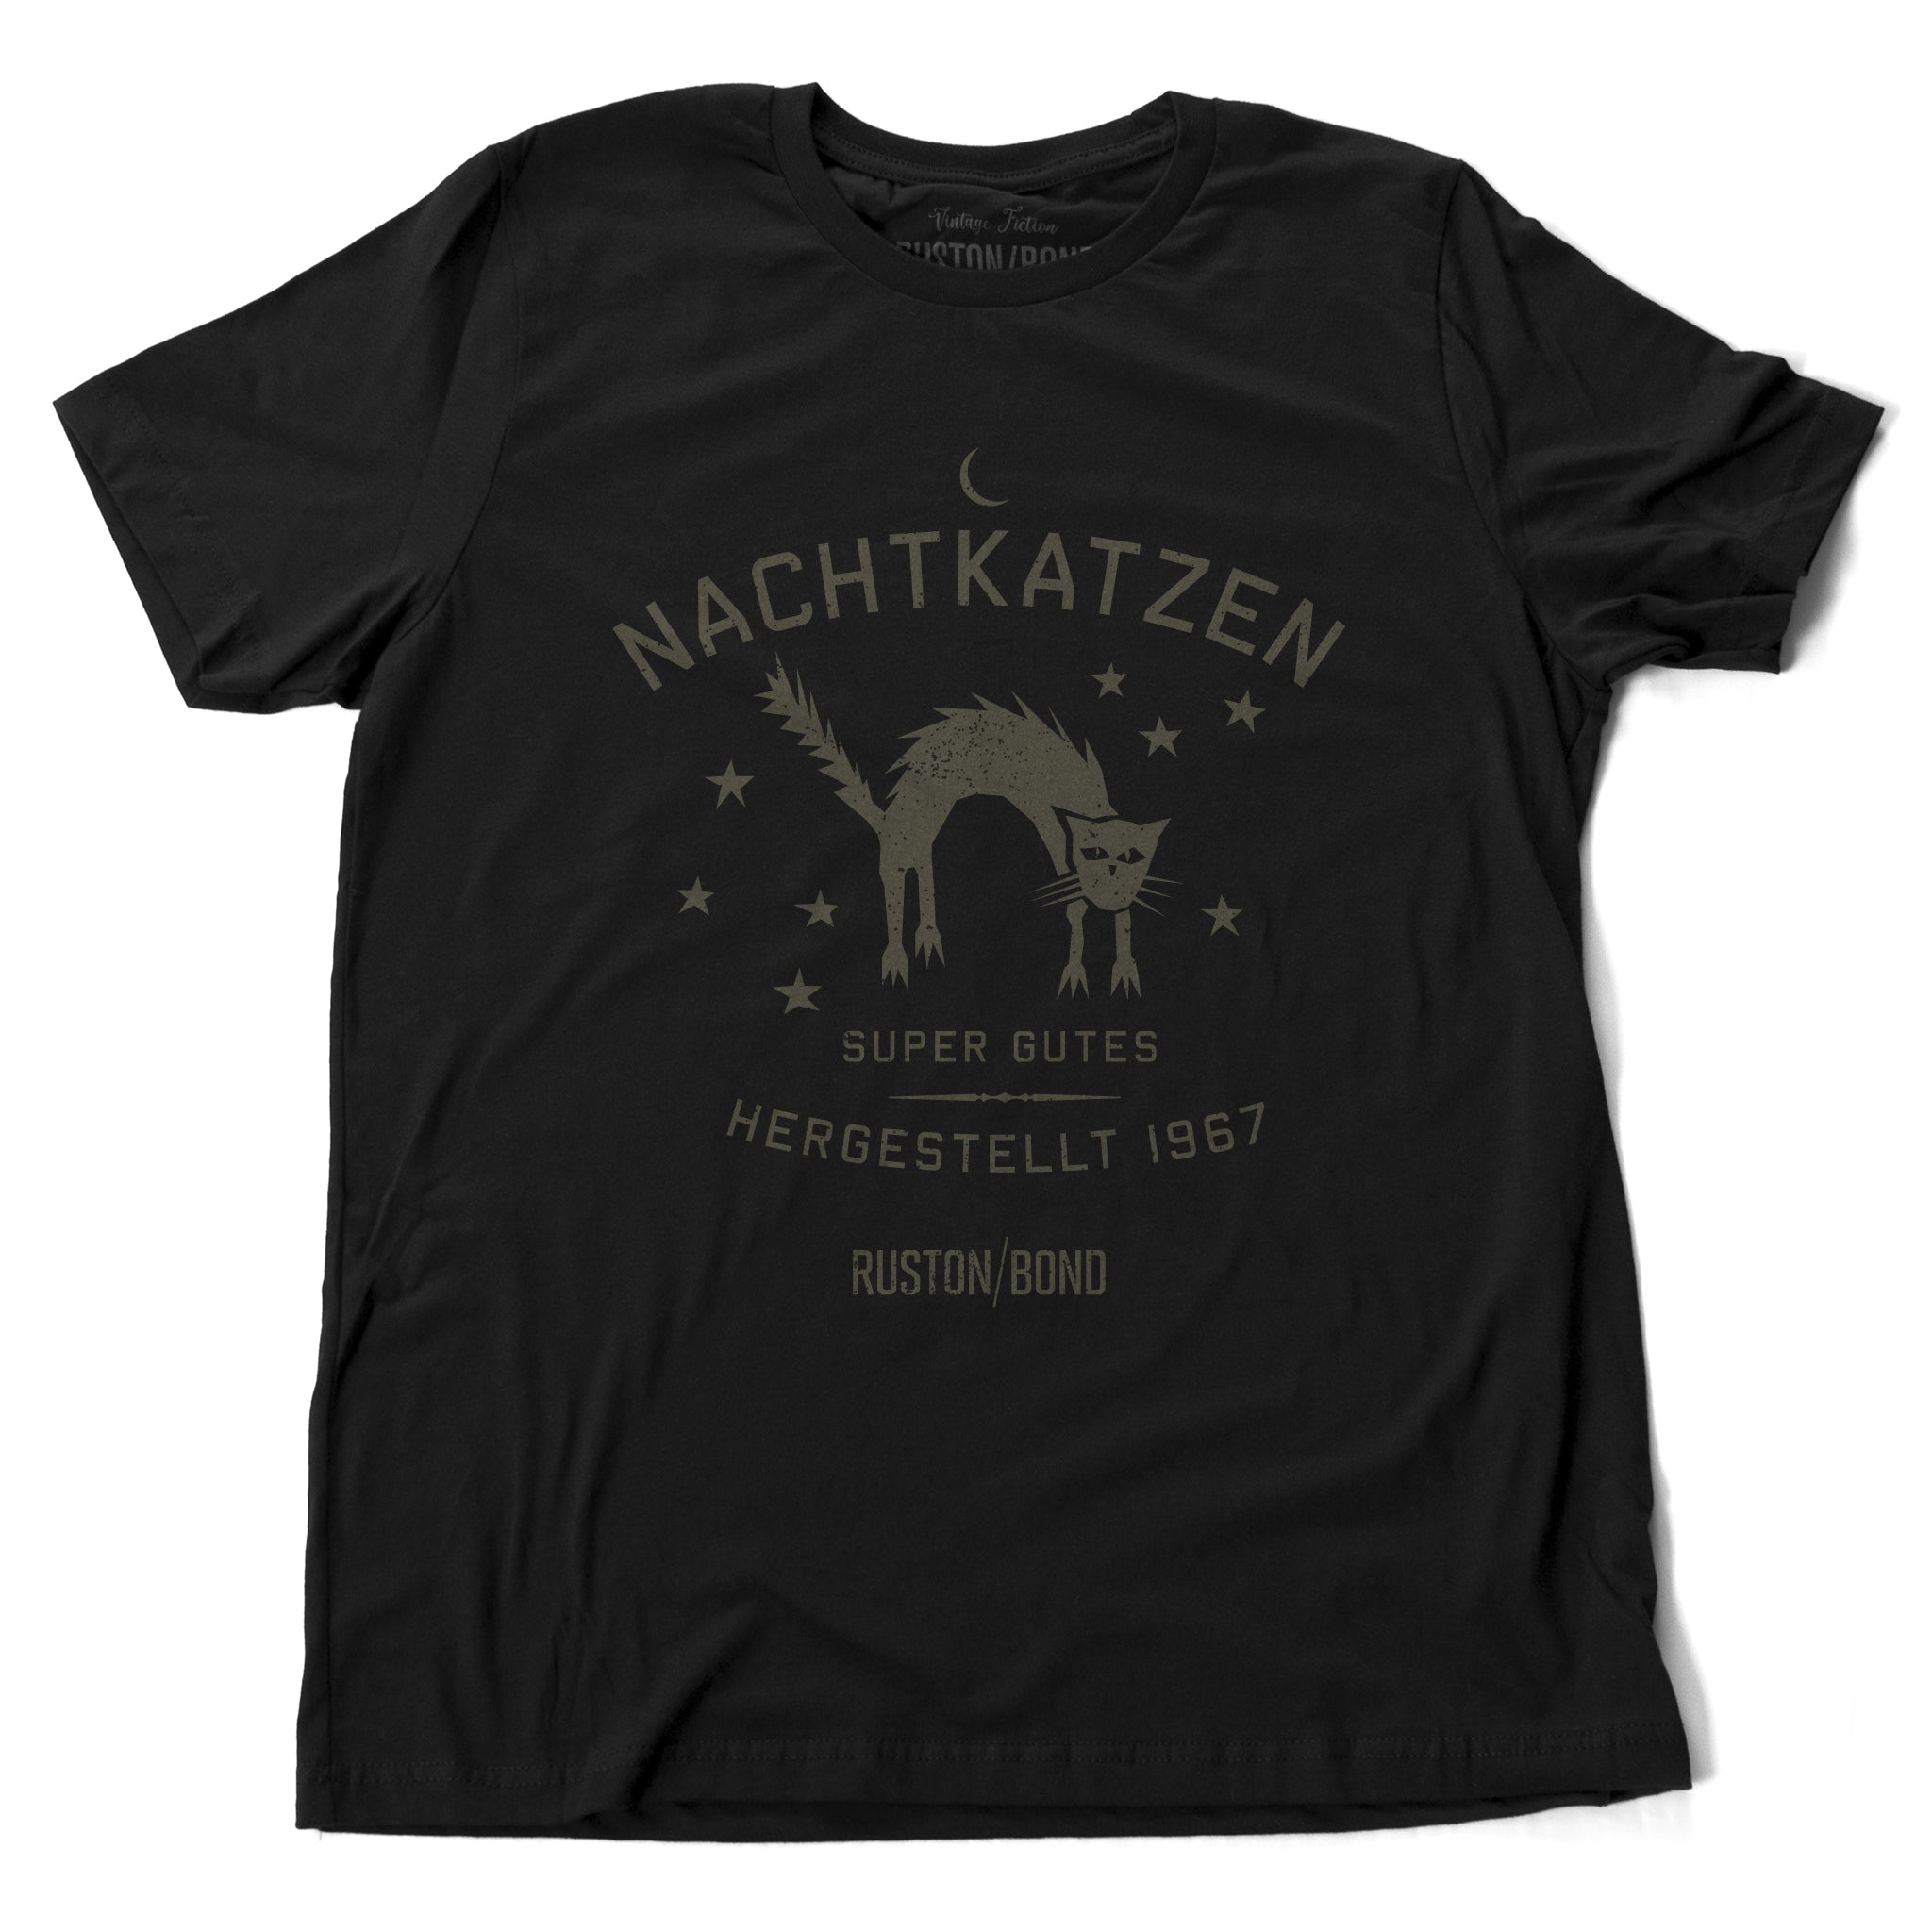 "A vintage-inspired retro design graphic t-shirt in classic Black, featuring the image of an arched cat among stars, and the German text ""NACHTKATZEN, Super Gutes"" — translating to ""Night Cats, super good"" and the year 1967, with the Ruston/Bond logo beneath. From wolfsaint.net"